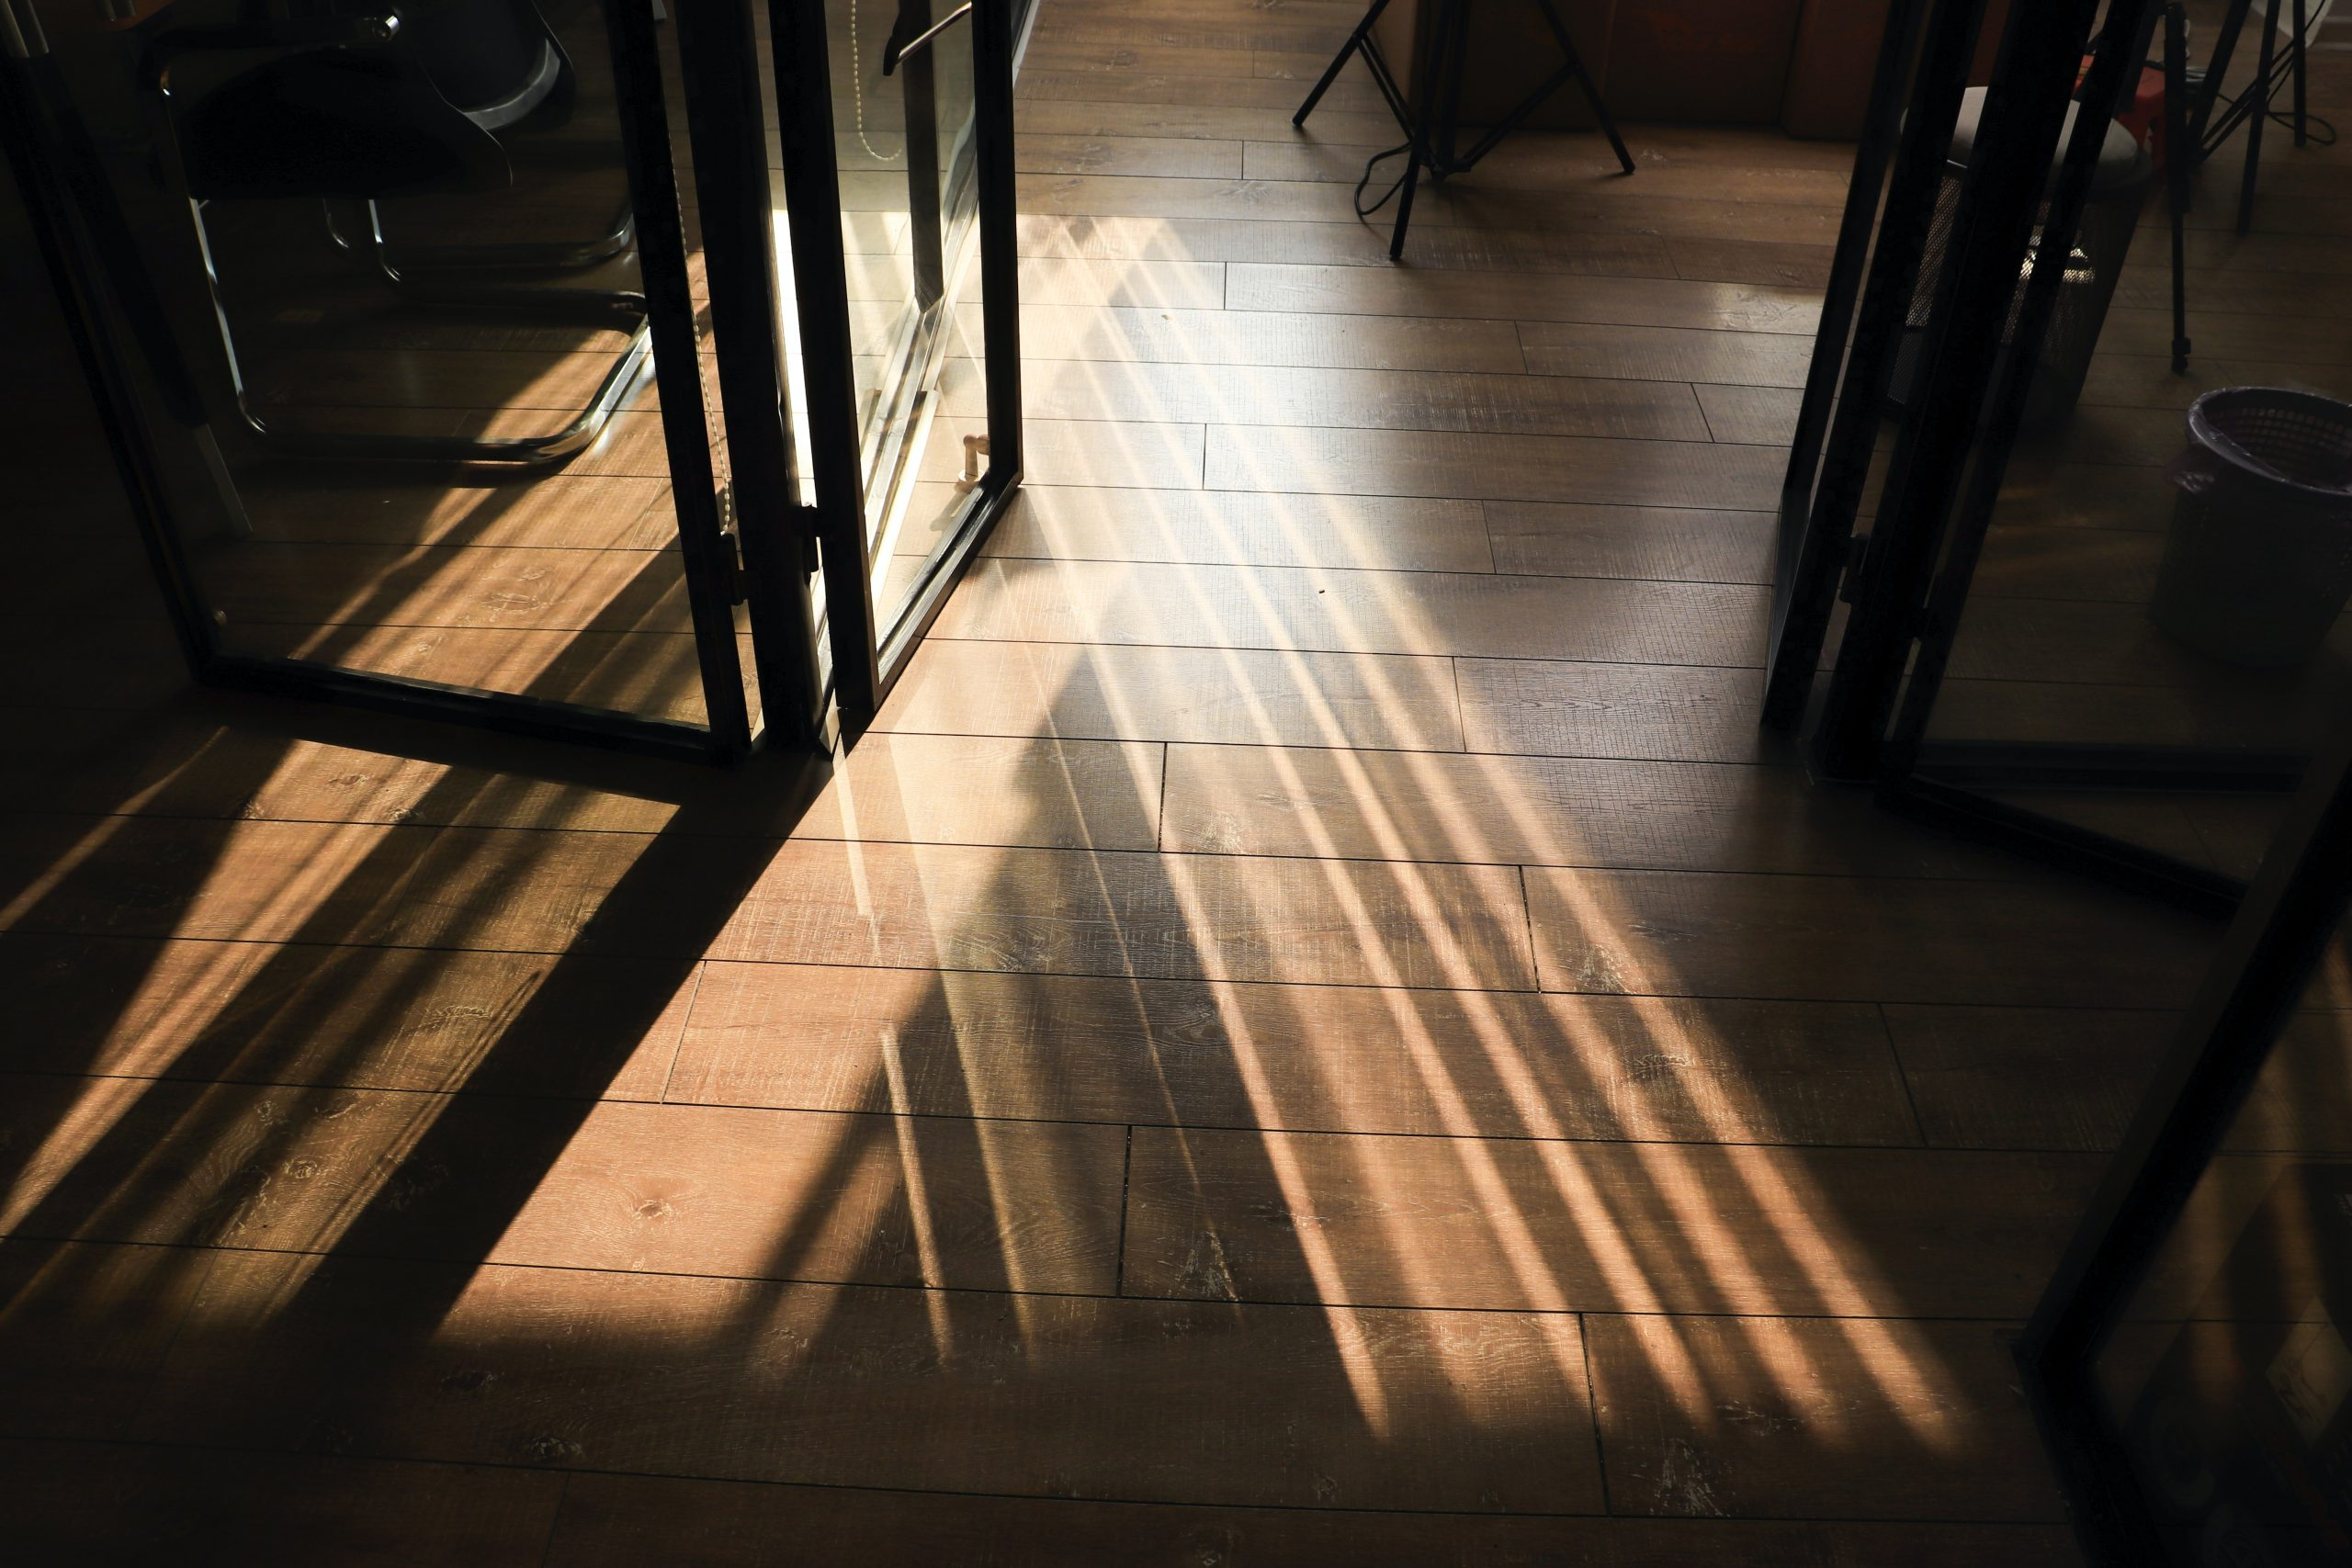 Why You Should Get Laminate Flooring Instead of Solid Wood